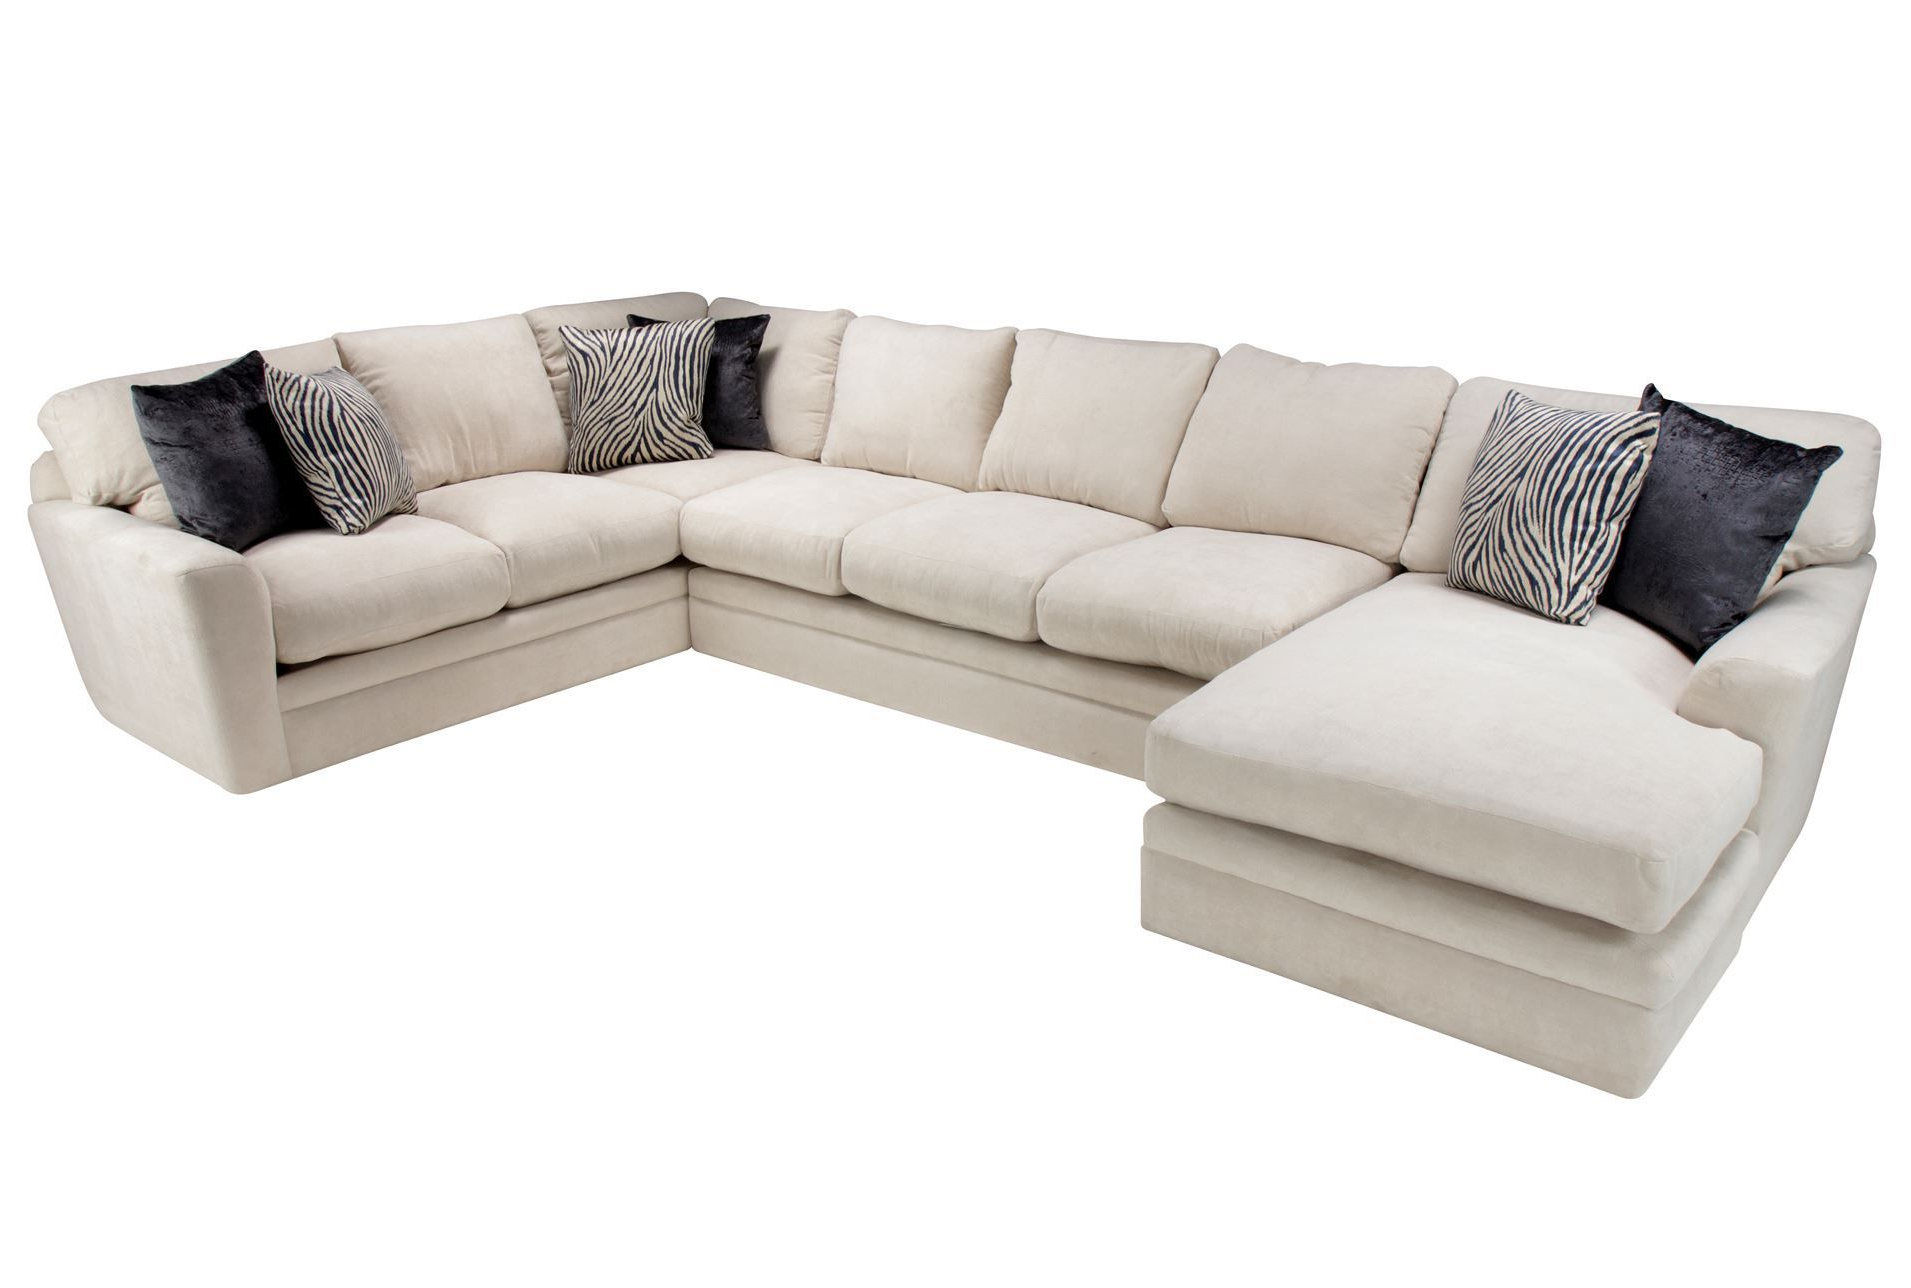 Home Throughout Most Up To Date Glamour Ii 3 Piece Sectionals (Gallery 5 of 20)